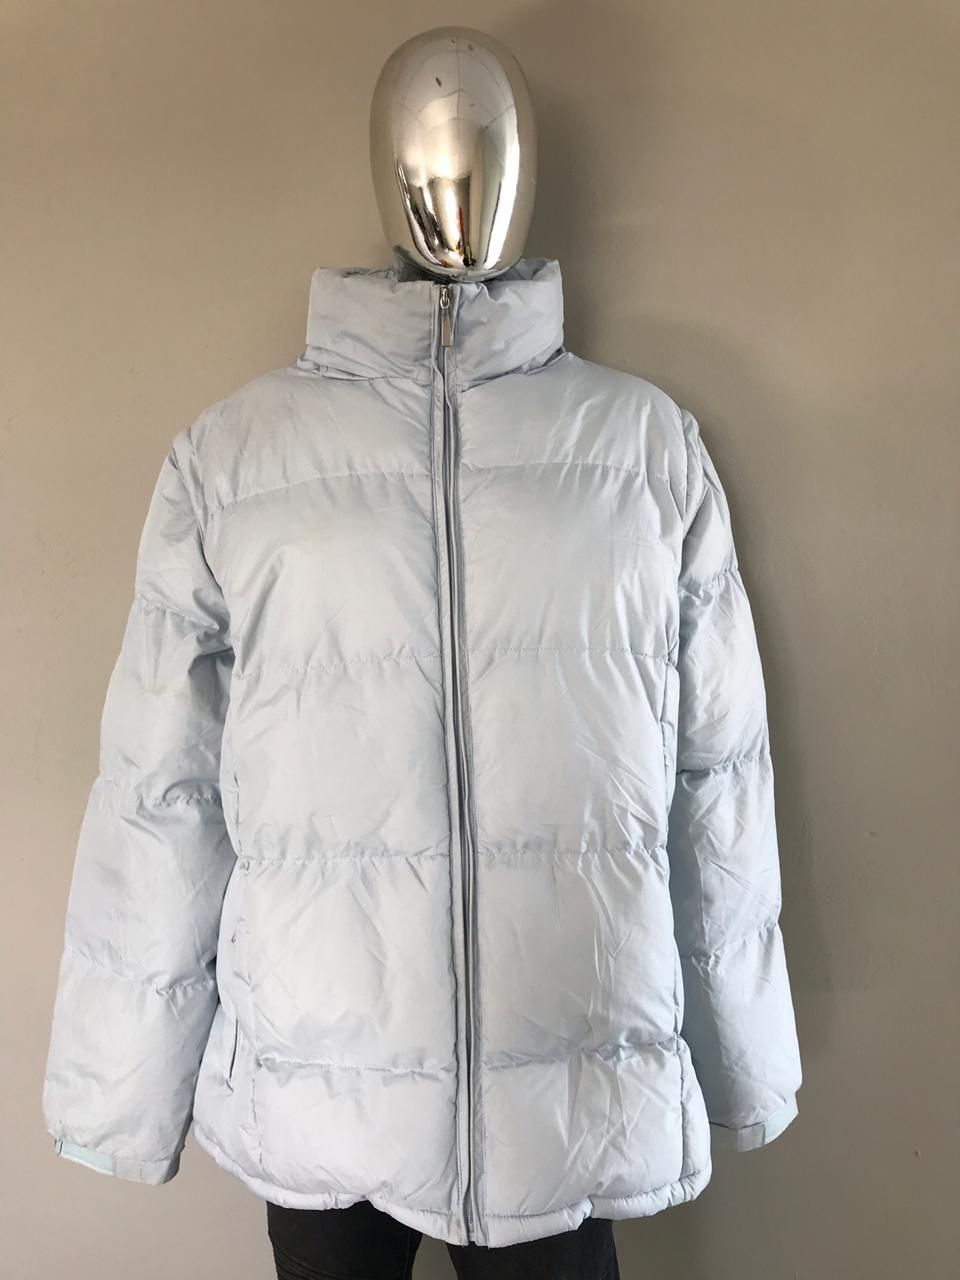 Pay R6700 for 100kg Adult Dutch Anoraks (Zippers) - Buy A Bale Make Your Own Cash